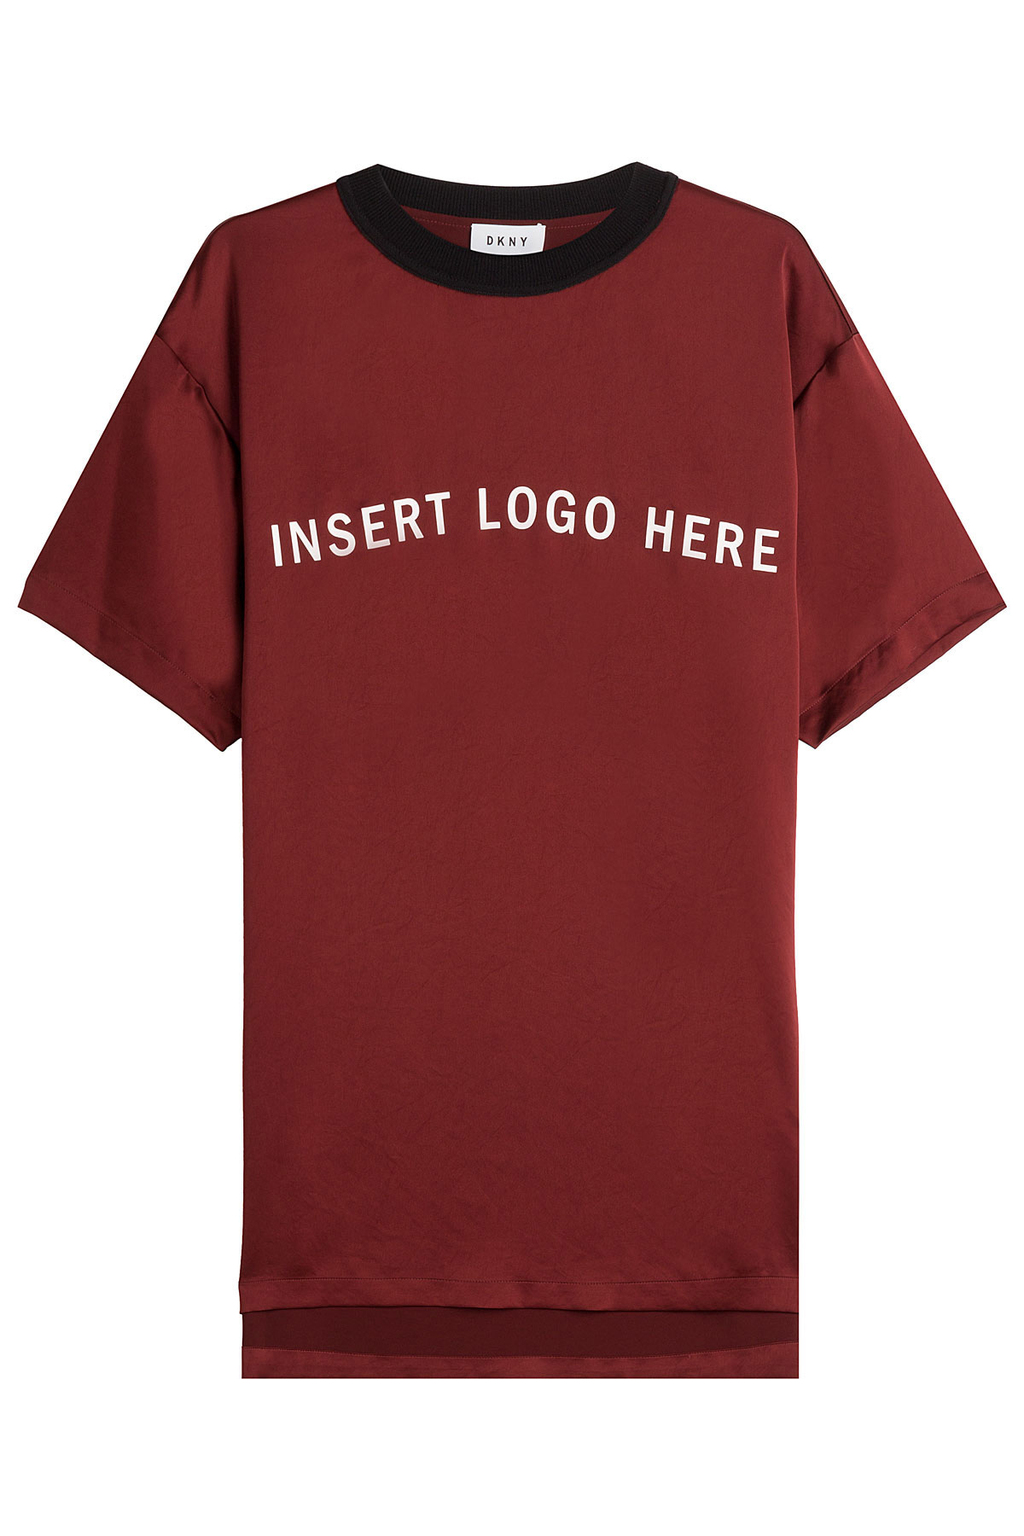 Lettered T Shirt - style: t-shirt; secondary colour: white; predominant colour: burgundy; occasions: casual; length: standard; fit: body skimming; neckline: crew; sleeve length: short sleeve; sleeve style: standard; pattern type: fabric; texture group: jersey - stretchy/drapey; fibres: viscose/rayon - mix; pattern: graphic/slogan; multicoloured: multicoloured; season: a/w 2016; wardrobe: highlight